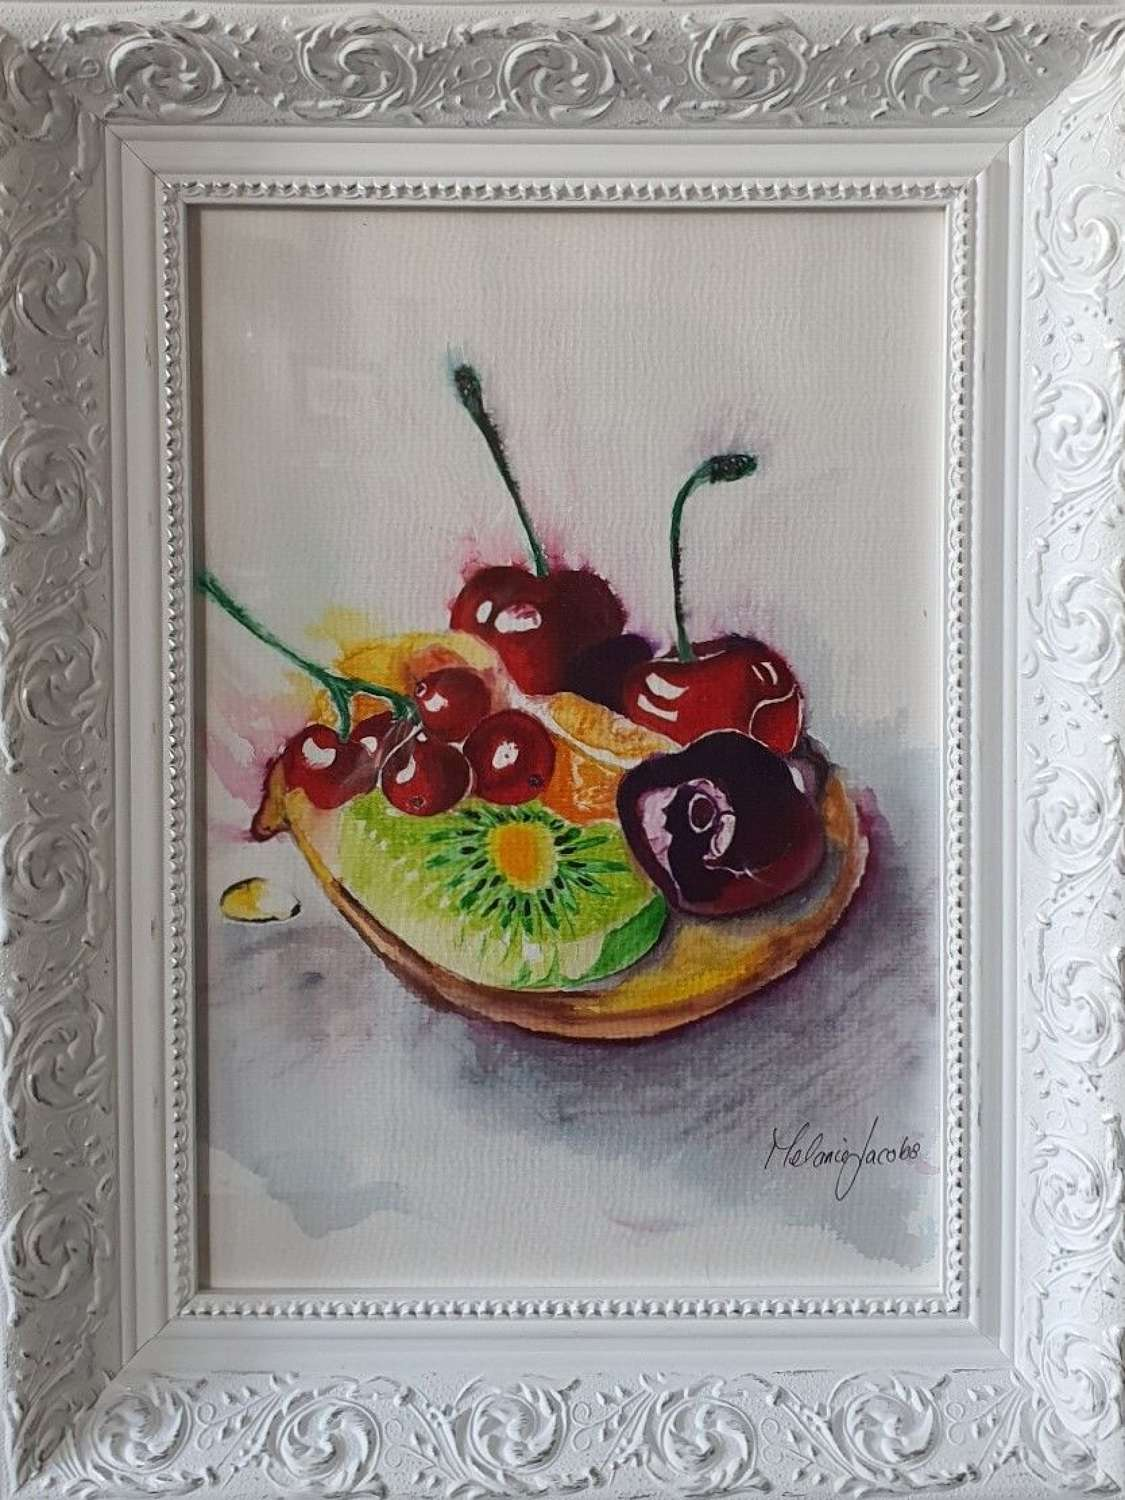 'Fruit Tart' - Original Watercolour By Melanie Jacobs